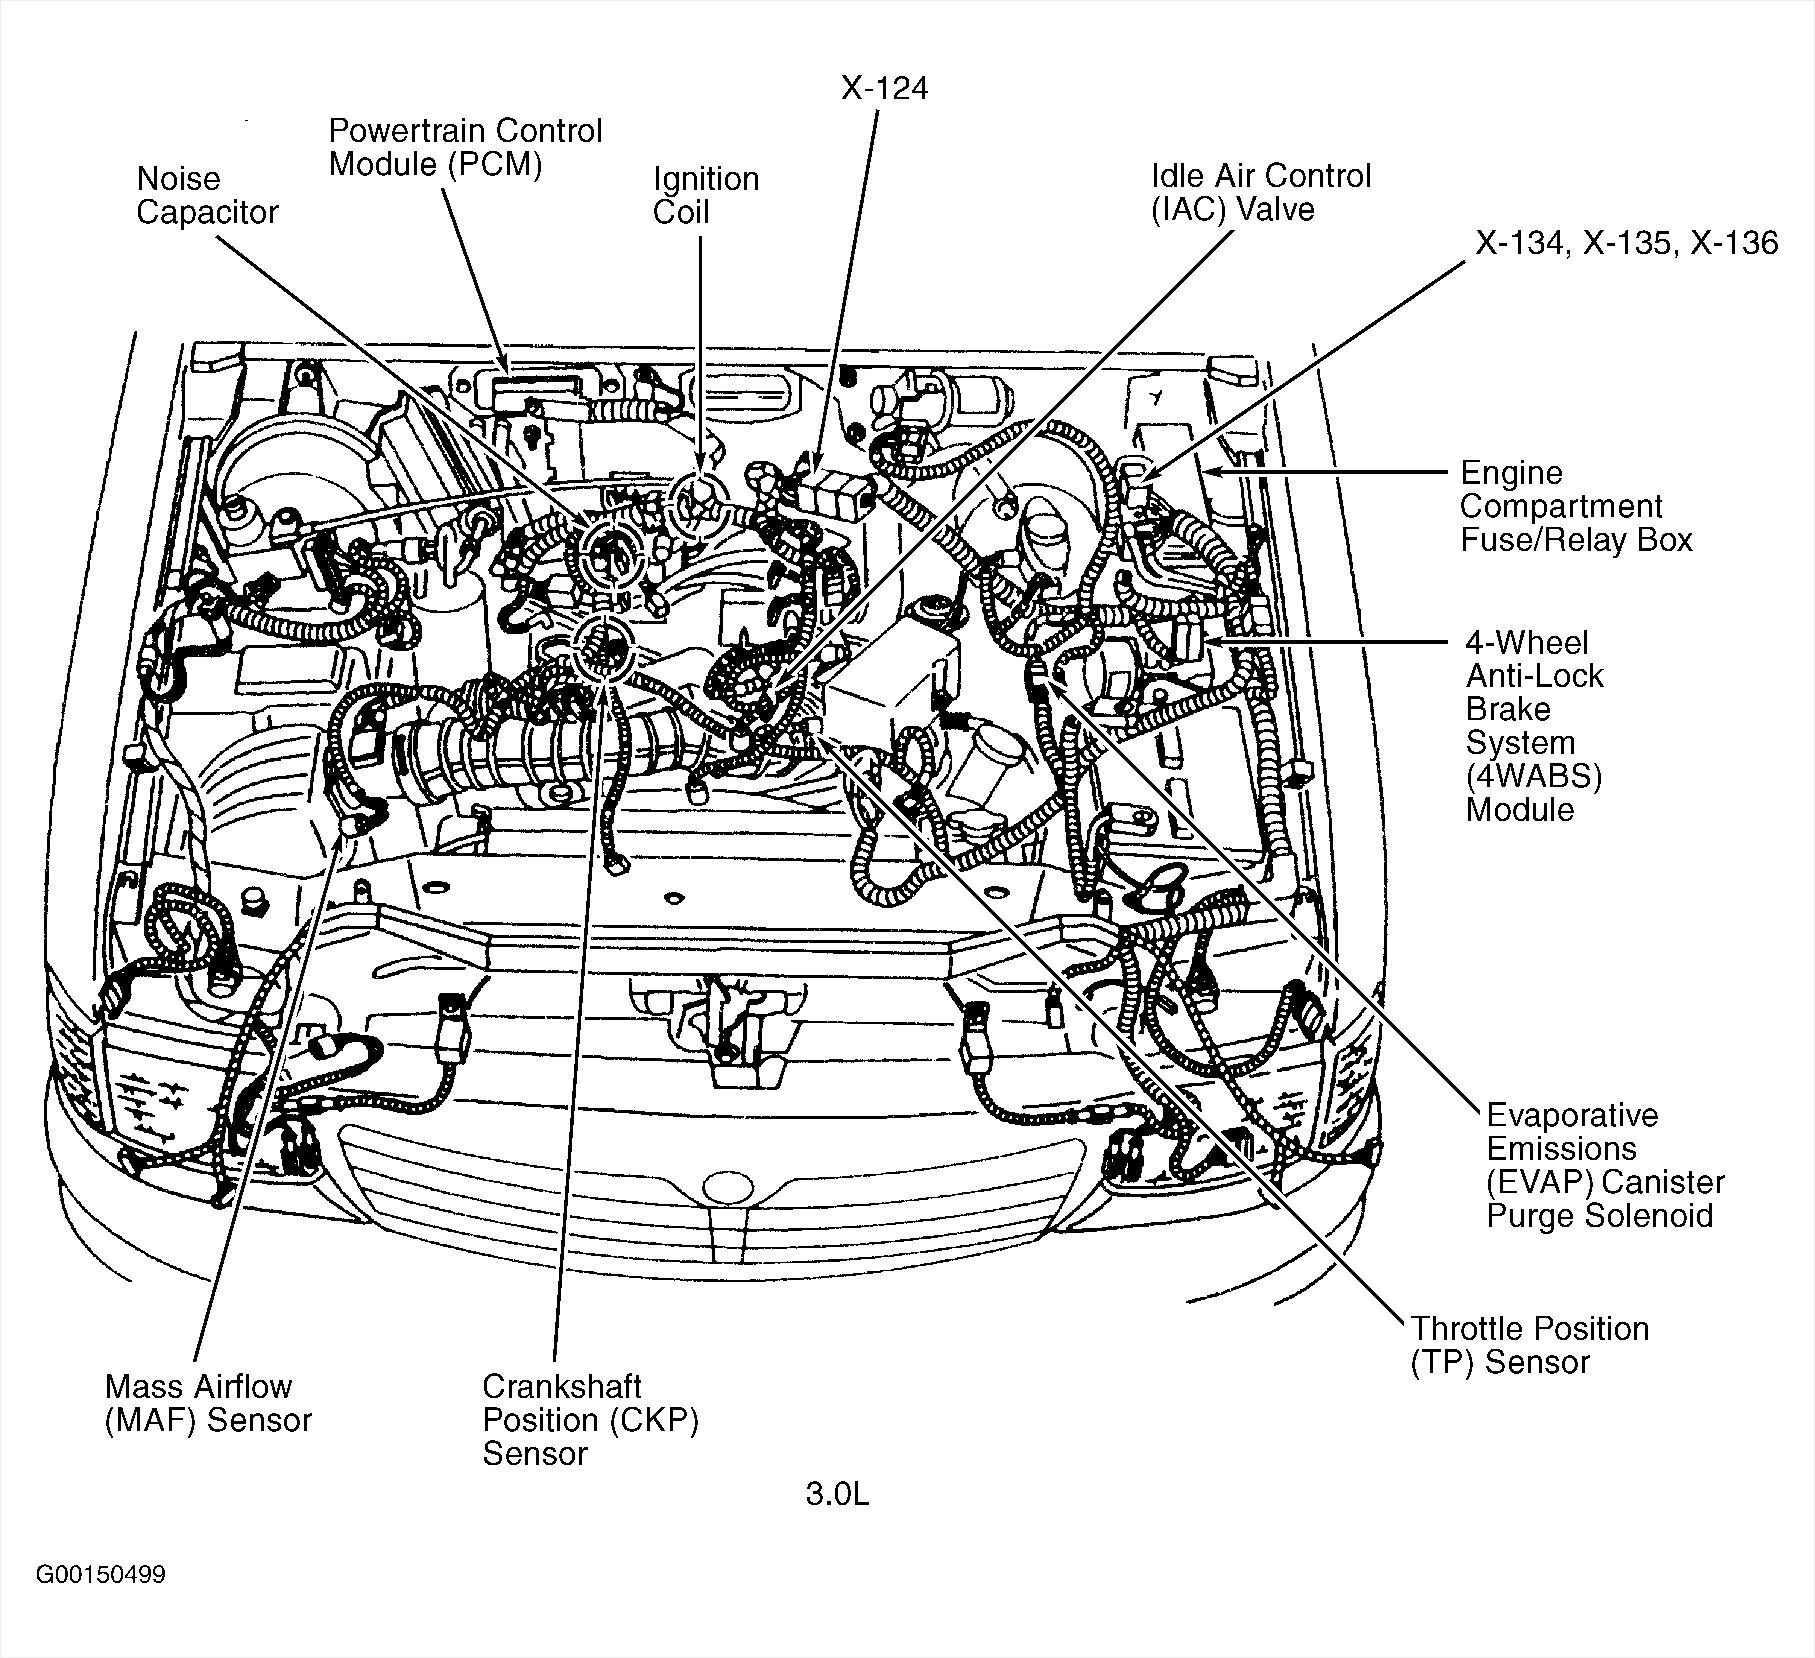 2003 Mazda Protege 5 Engine Compartment Wiring Schematic Saferbrowser Yahoo Image Search Results Ford Ranger Mazda Diagram